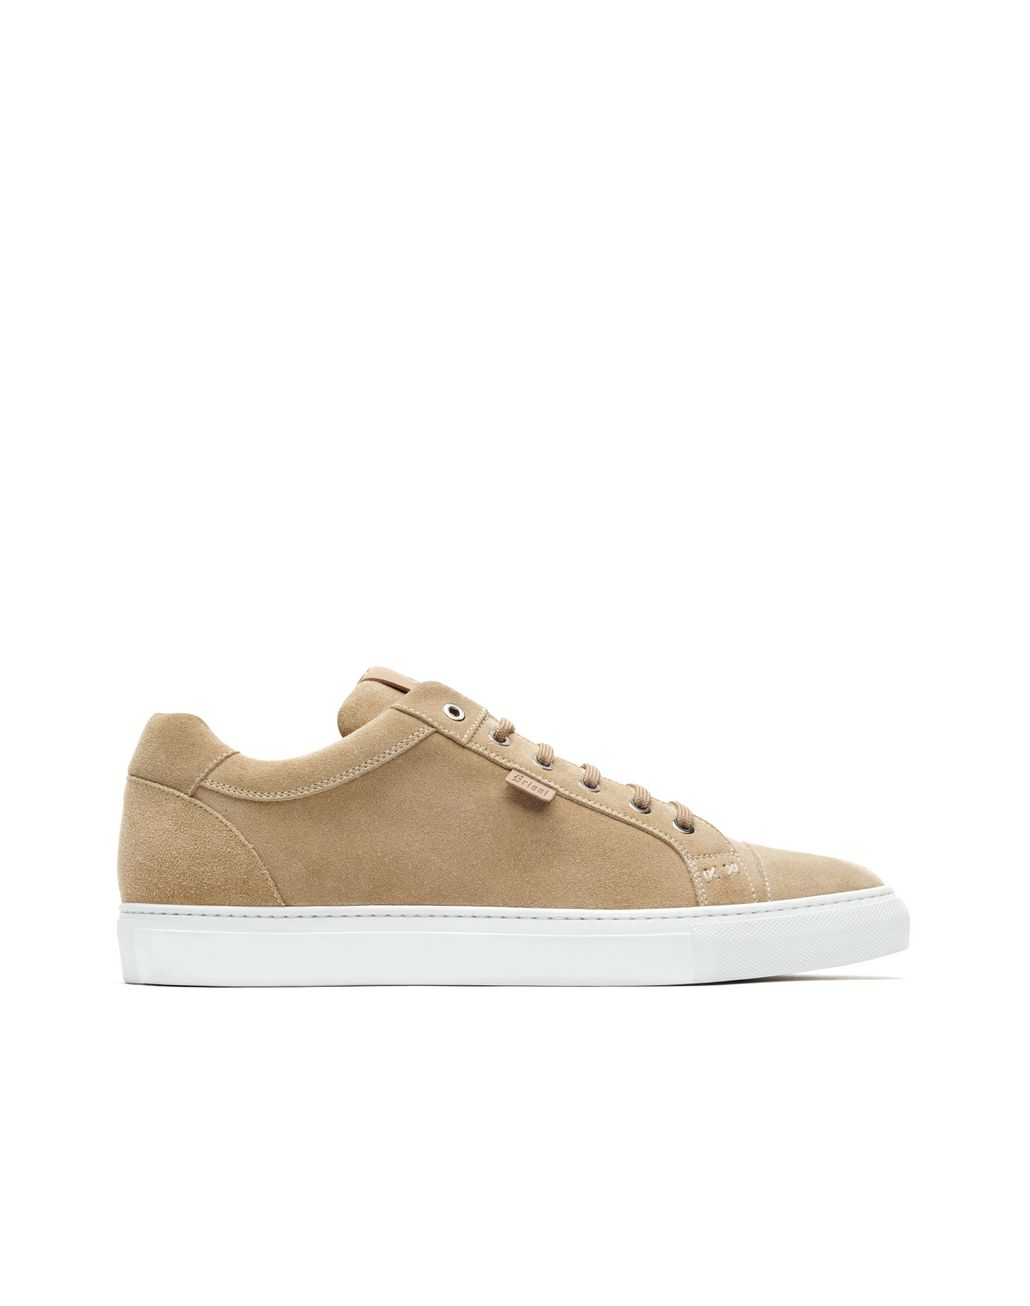 BRIONI Beige Suede Sneakers Sneakers [*** pickupInStoreShippingNotGuaranteed_info ***] f